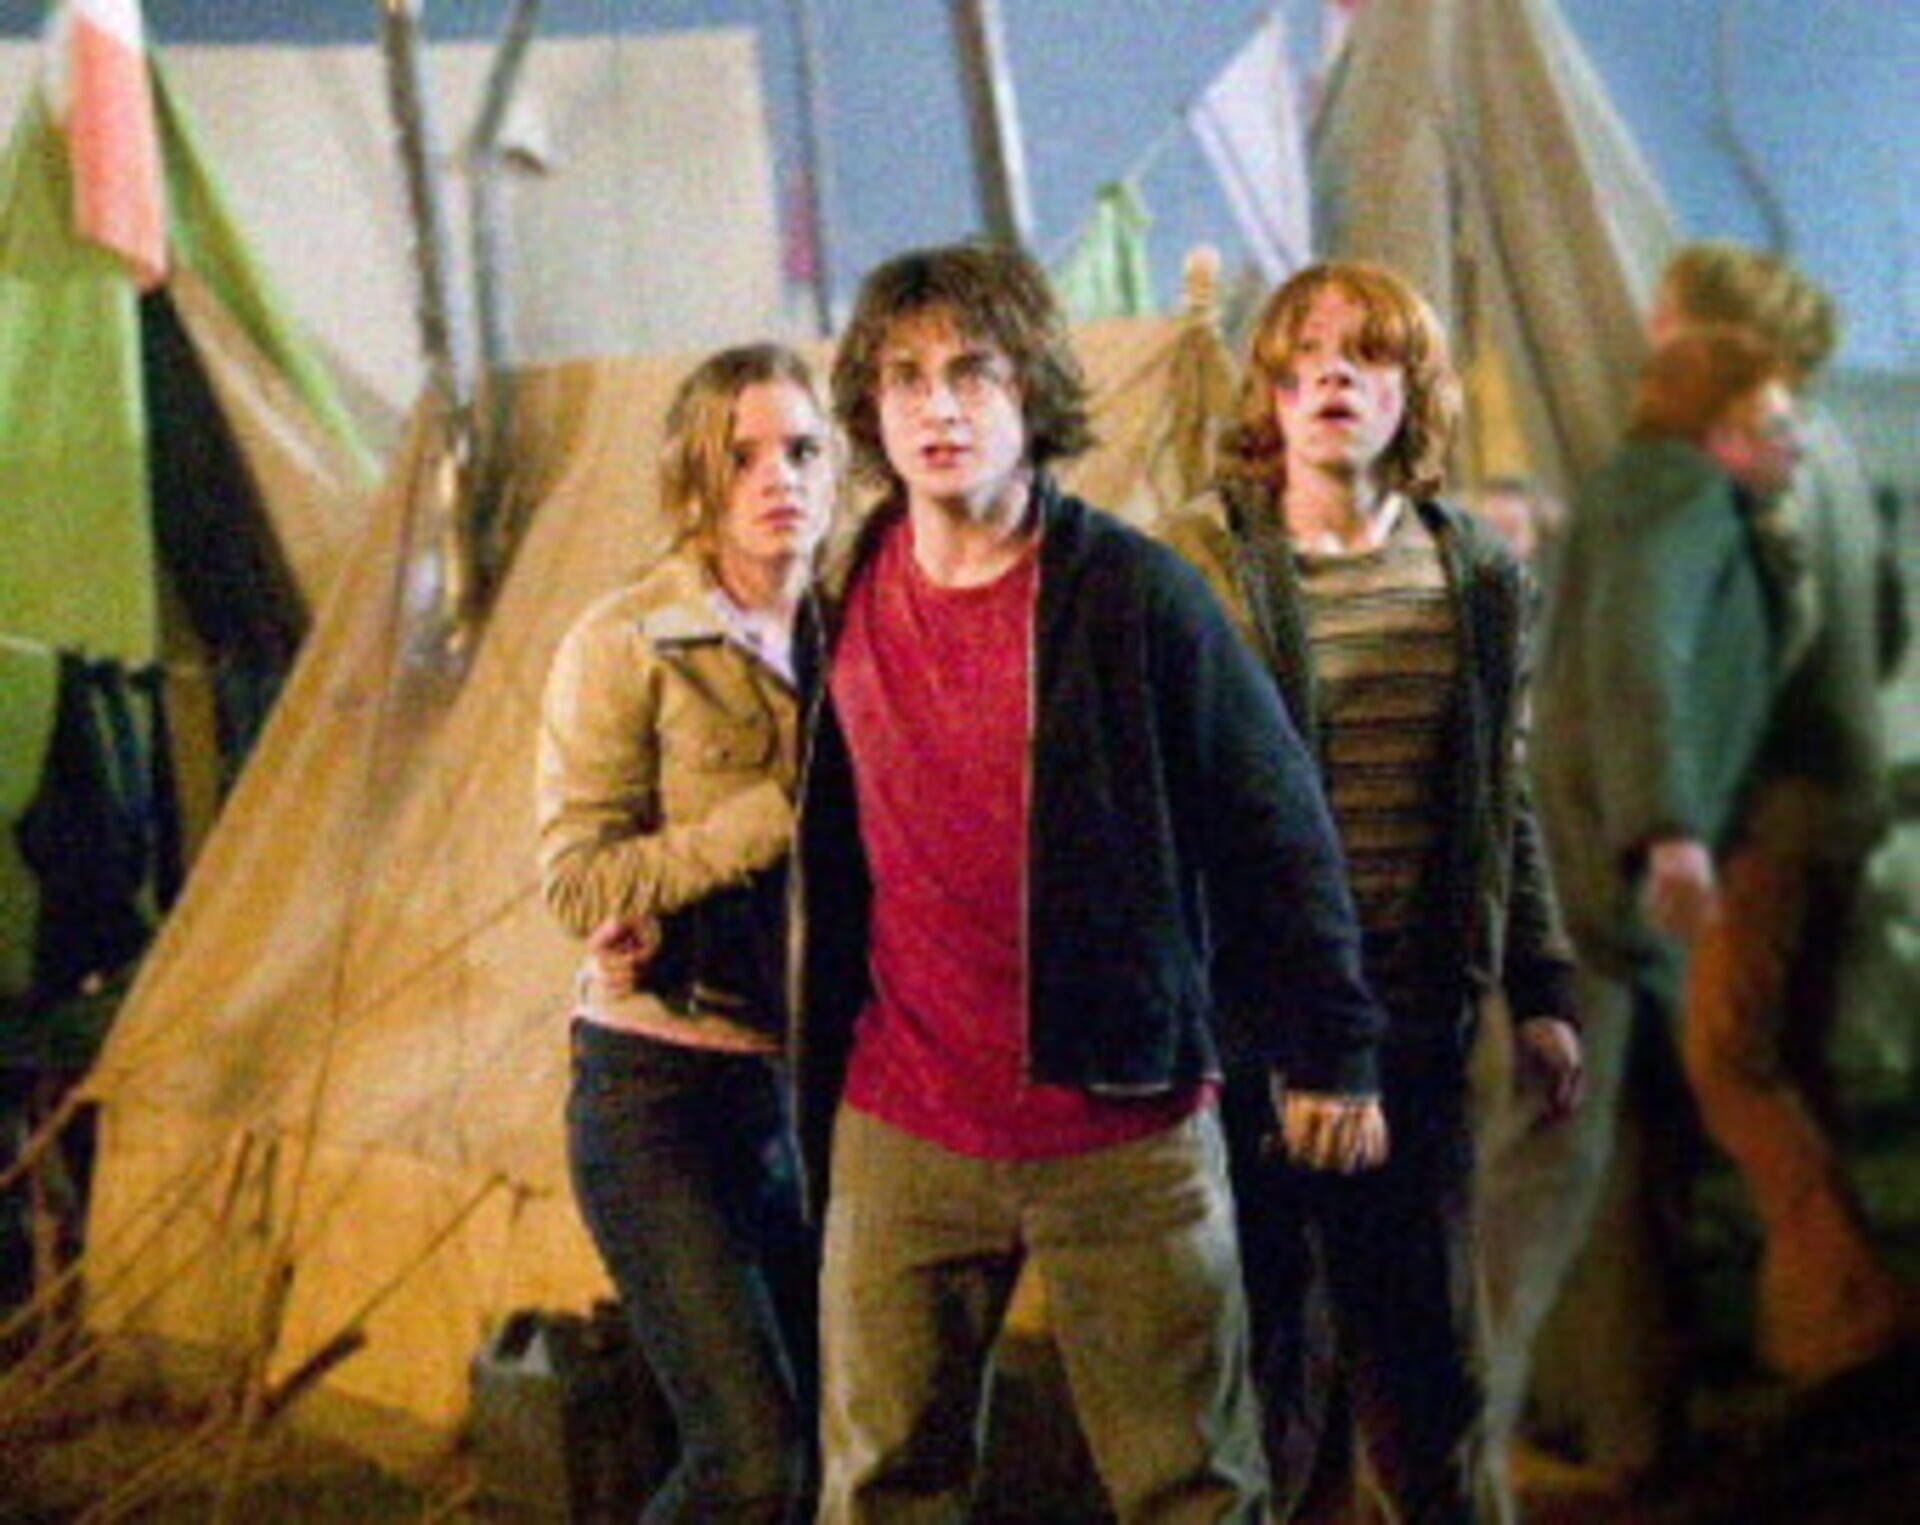 Harry Potter and the Goblet of Fire - Image 31